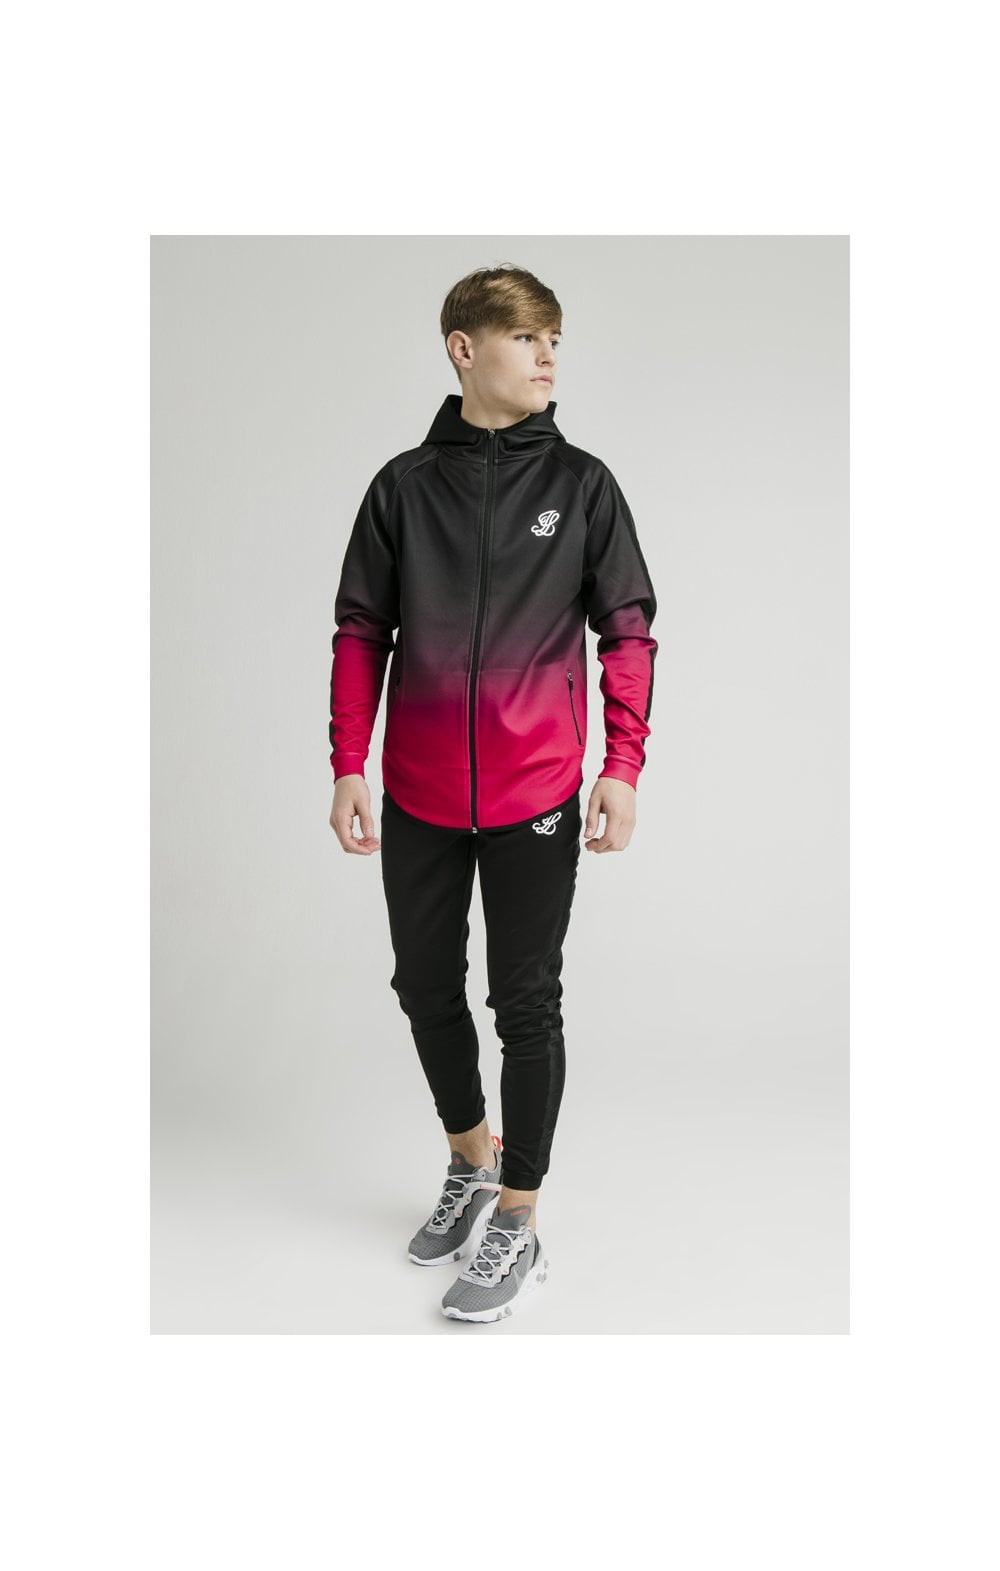 Load image into Gallery viewer, Illusive London Athlete Zip Through Fade Hoodie - Black & Pink (3)